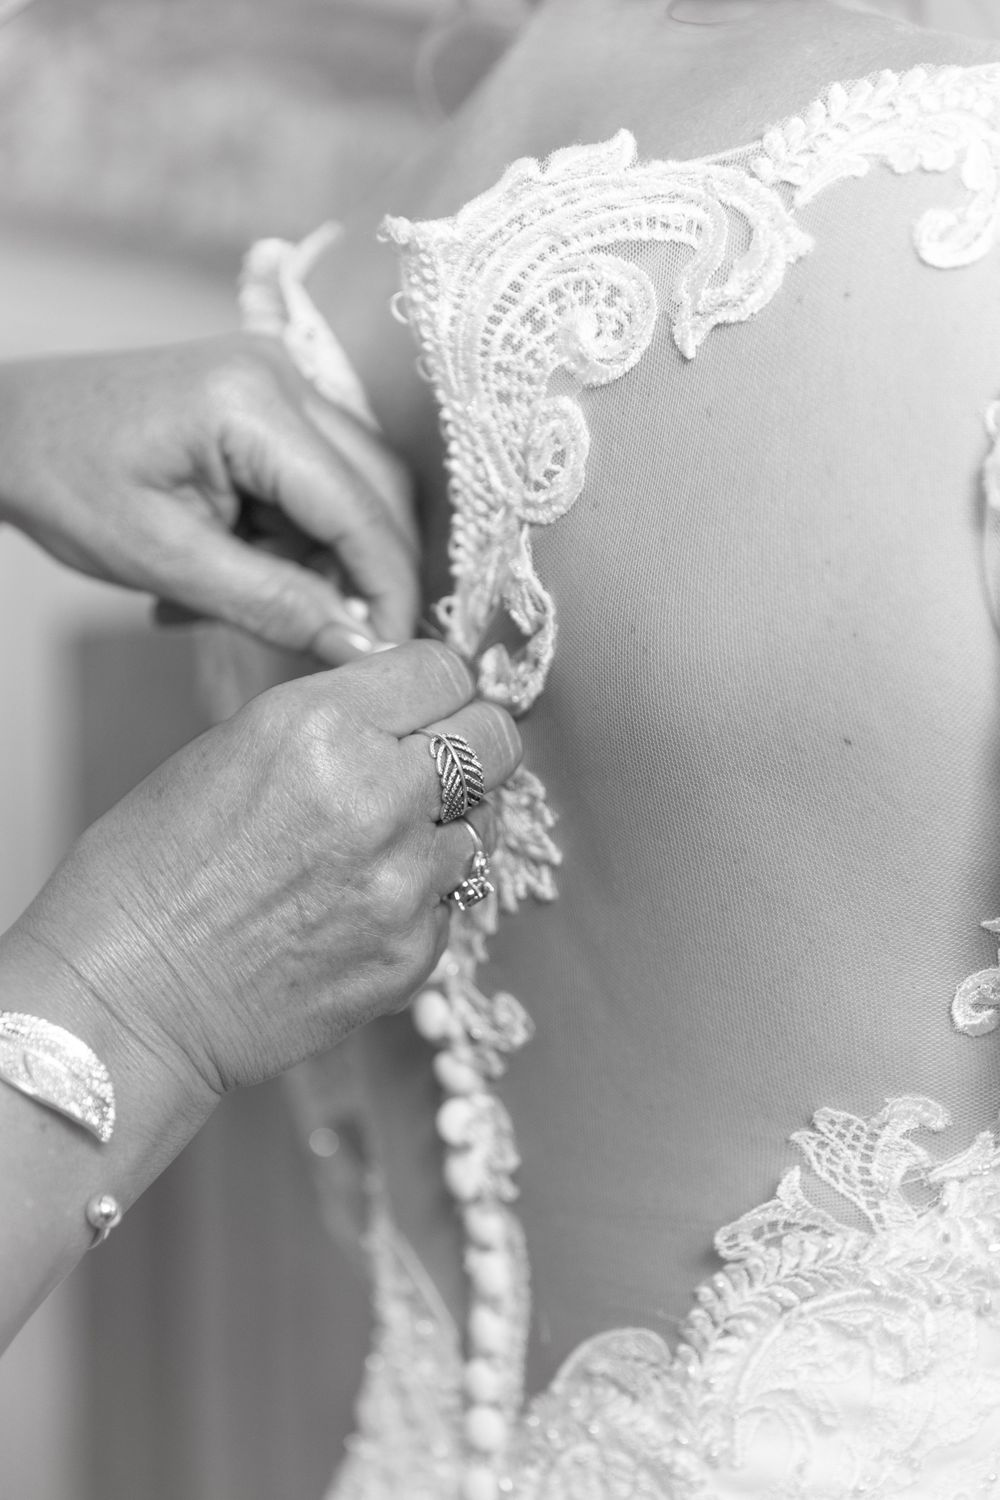 Close up black and white image of hands doing up the back of a delicate wedding dress.